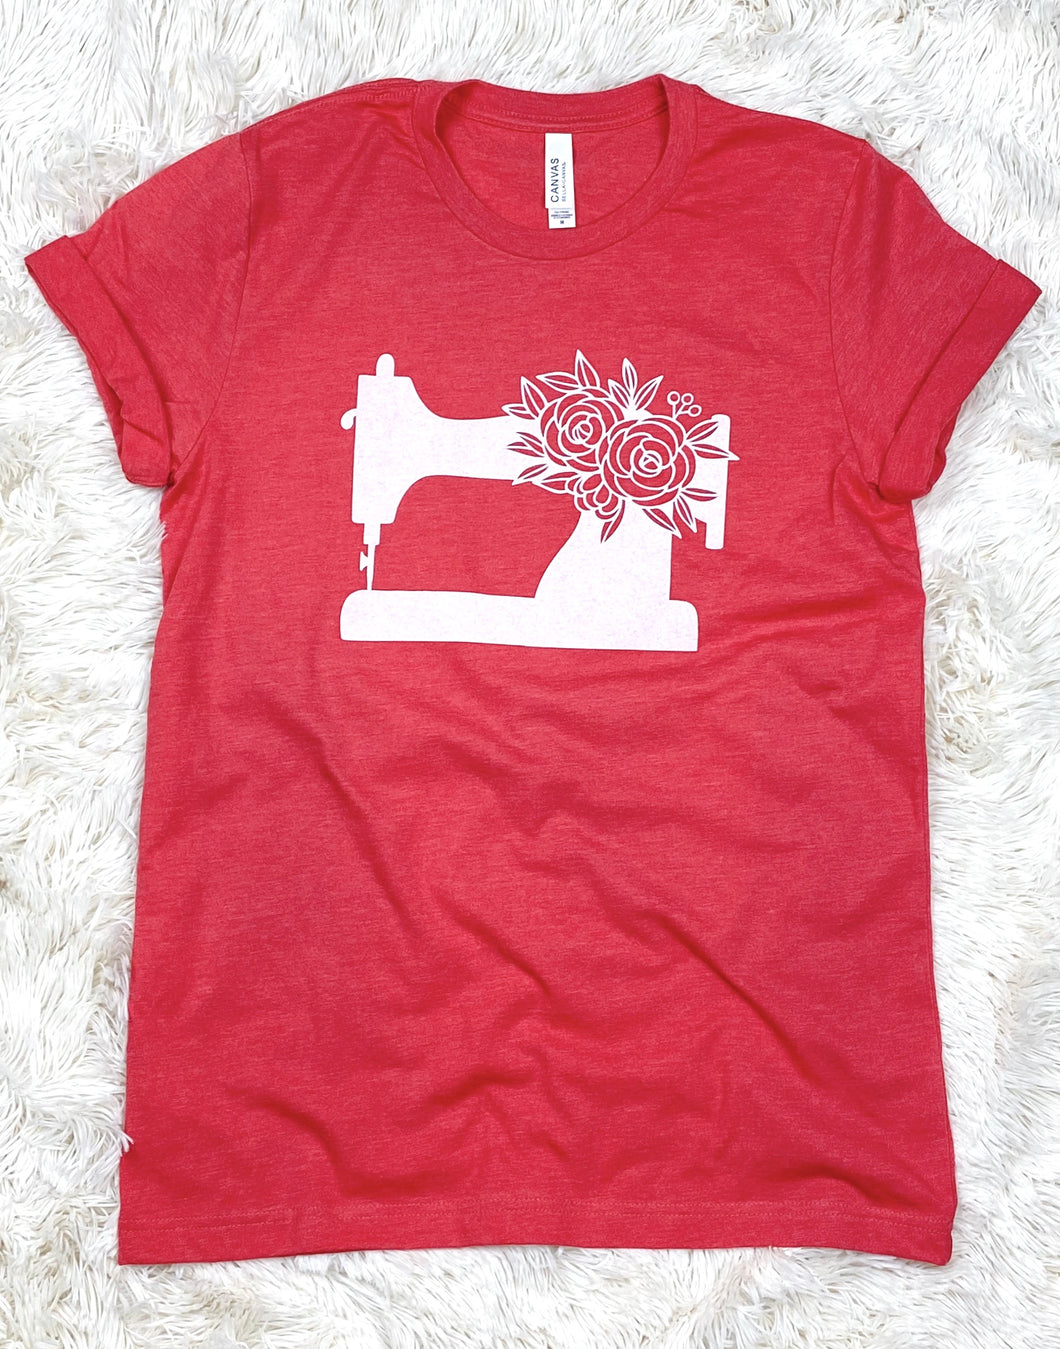 Sewing Machine Tee Shirt Heather Red